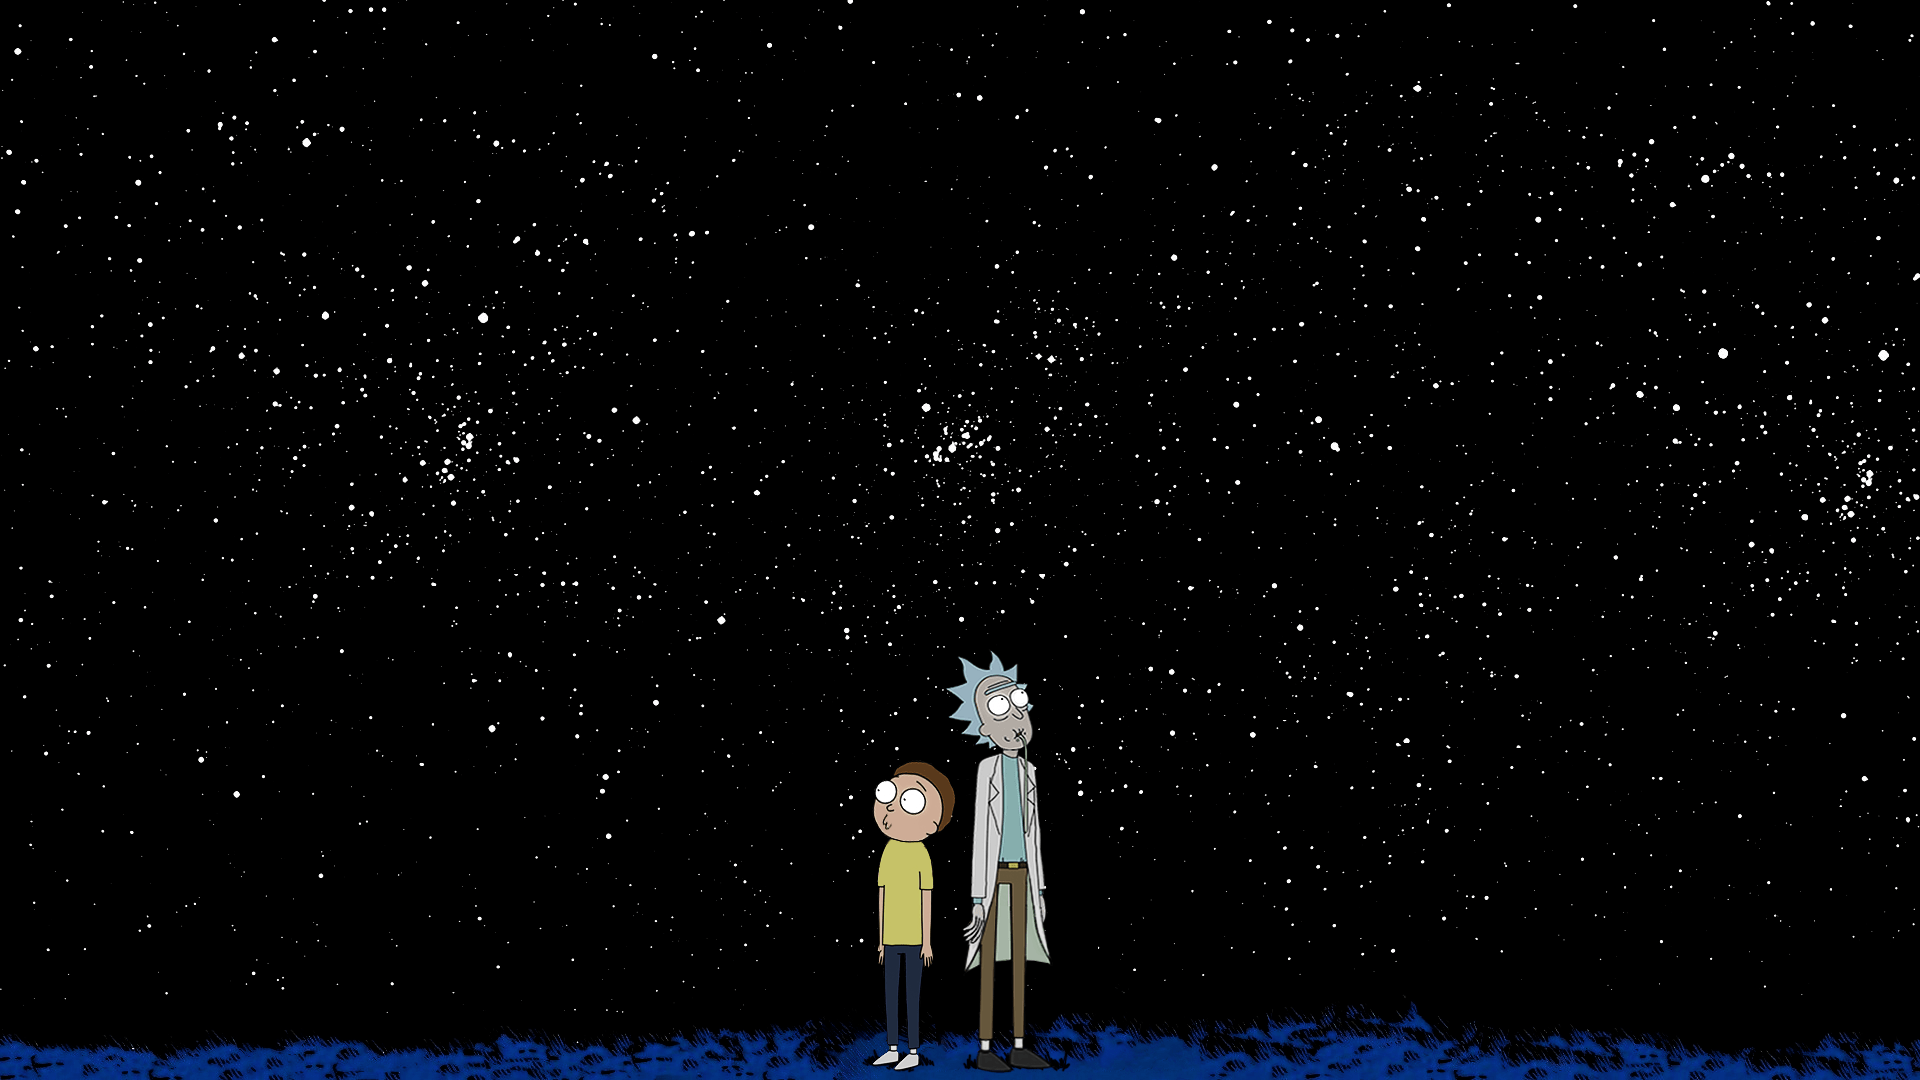 rick and morty season 3 episode 4 download